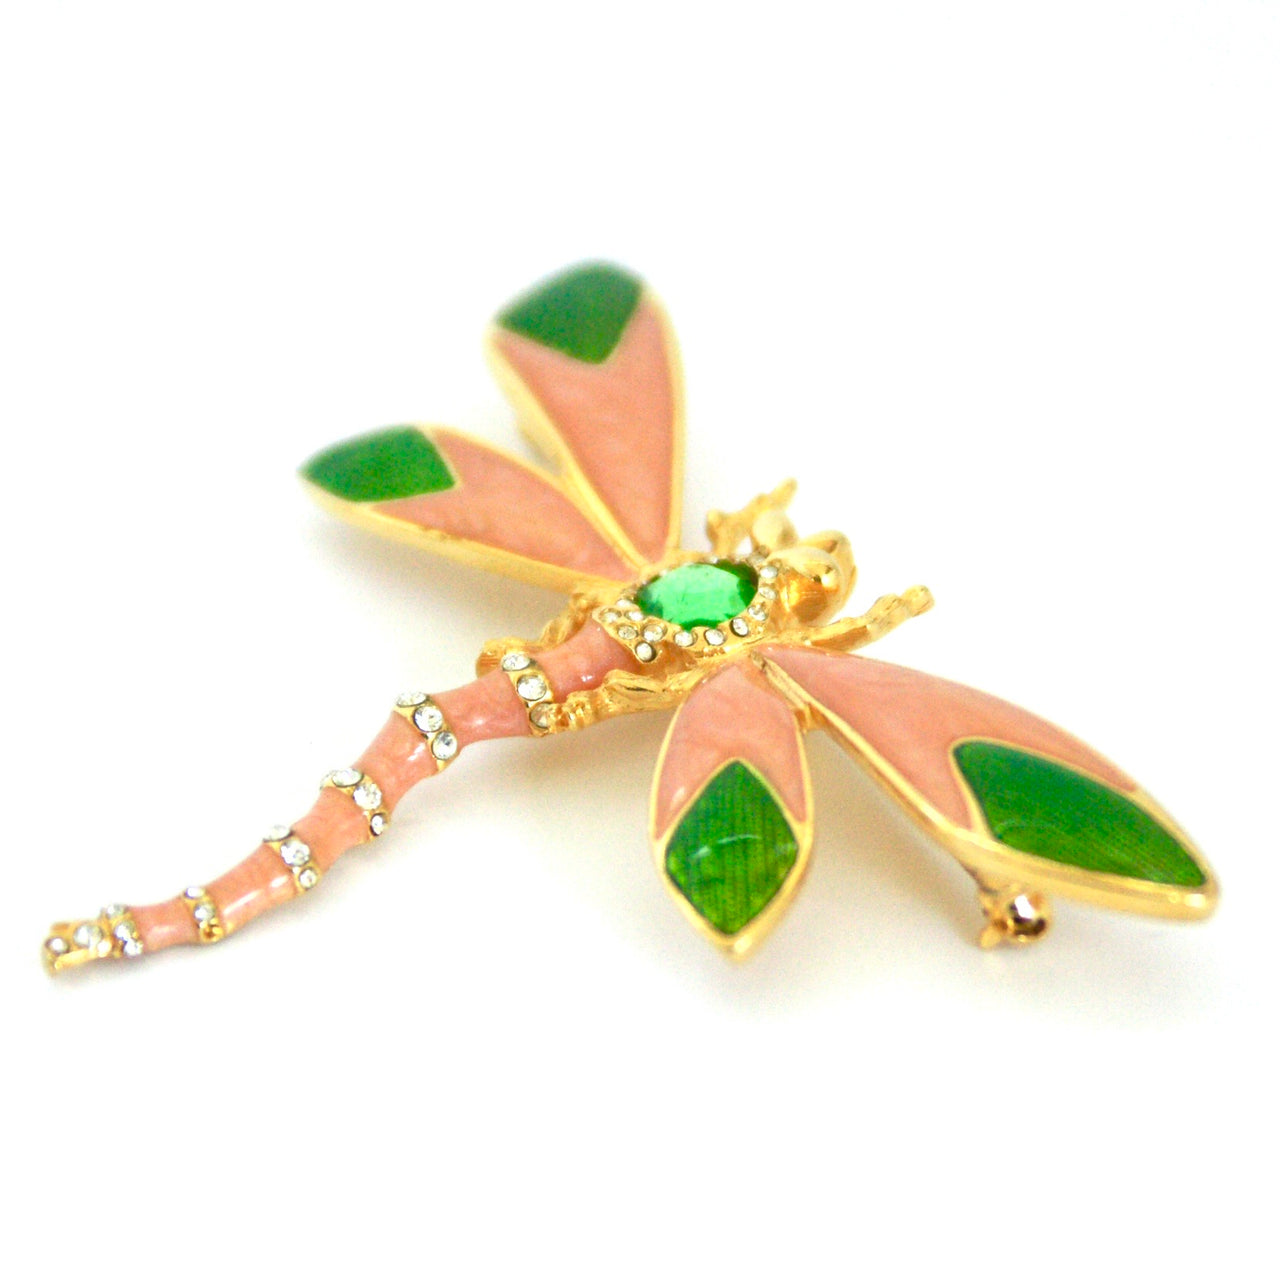 vintage dragonfly brooch, peach, green enamel